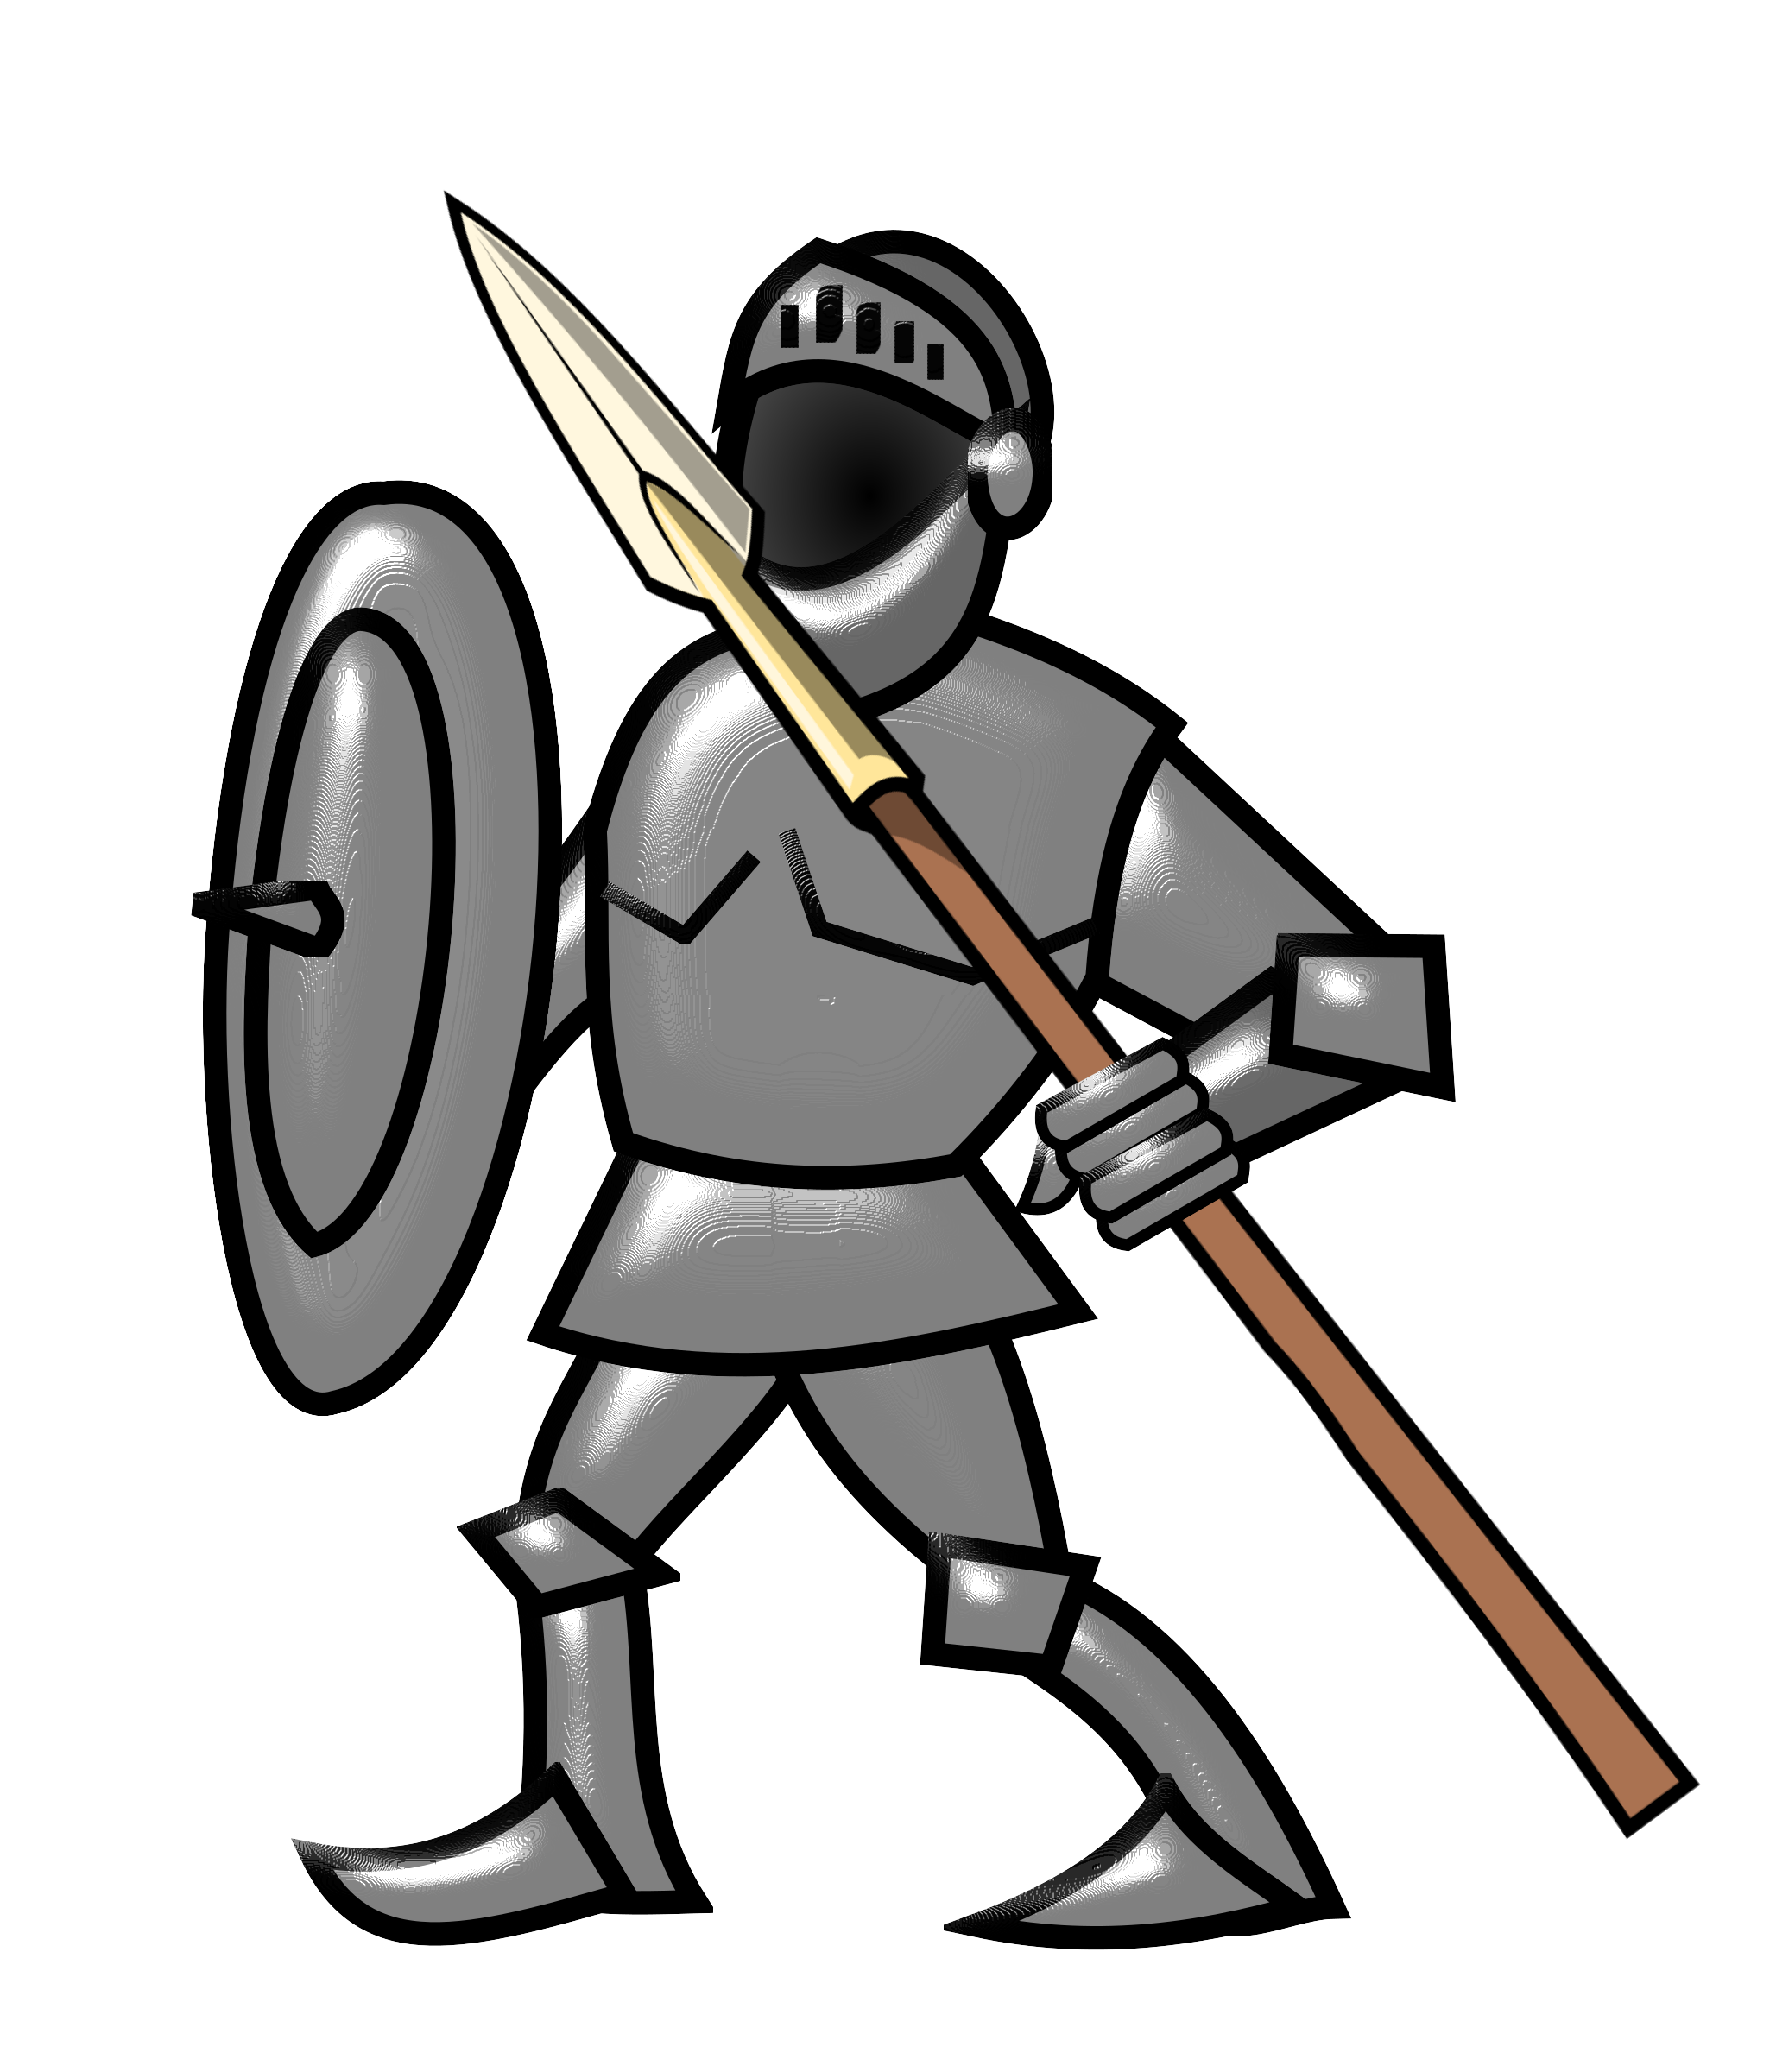 Medieval clipart knight armor. Image group full plate